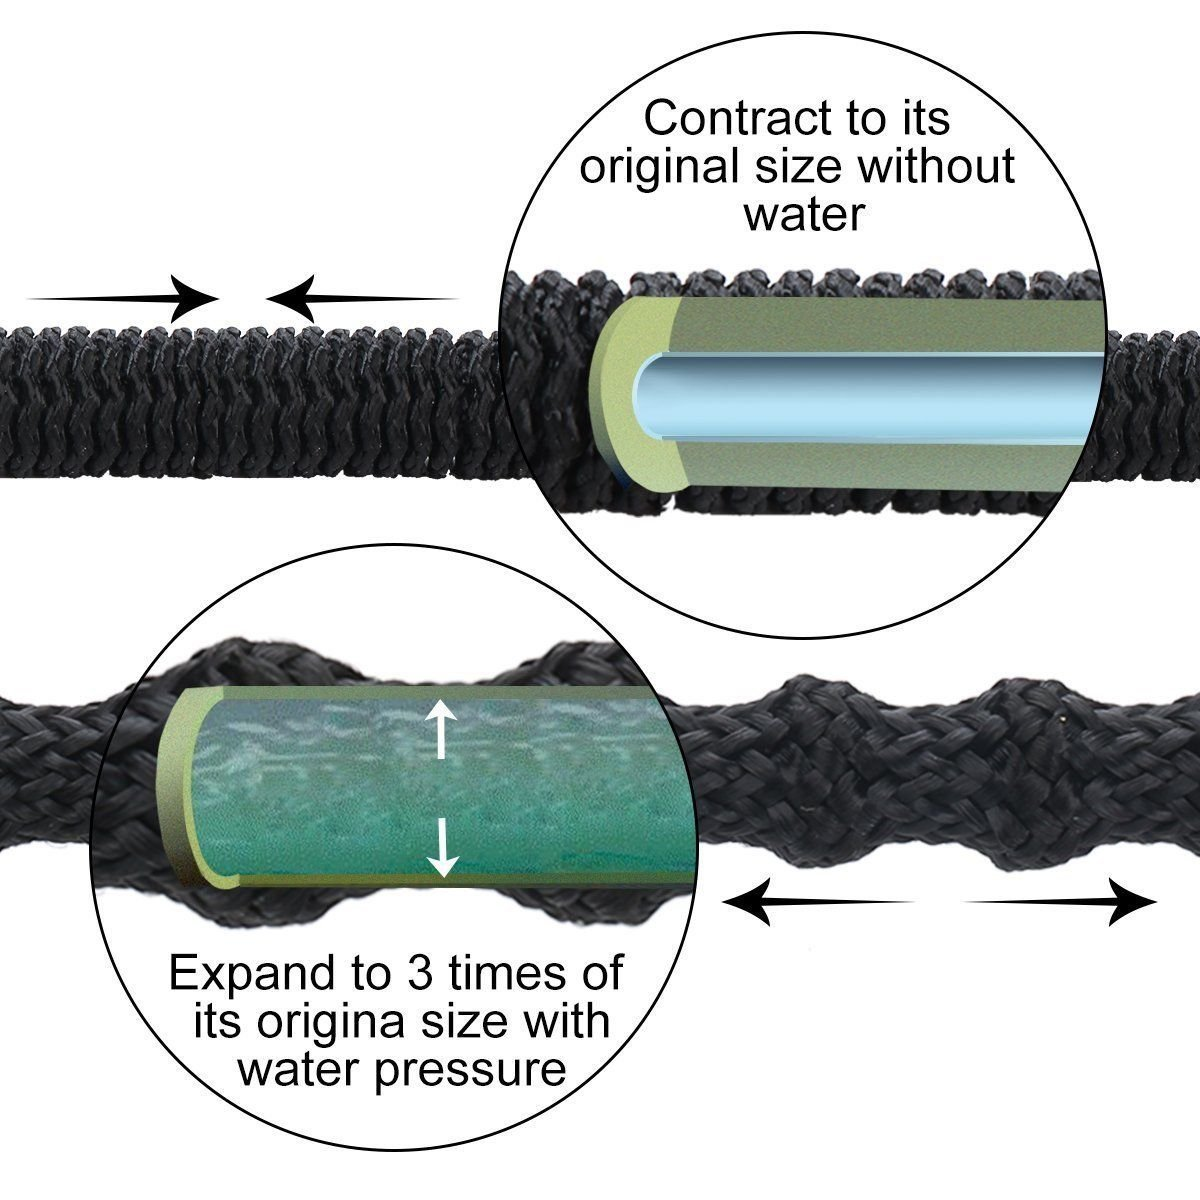 Expandable Garden Hose, 50 ft Water Hose with Spray Nozzle, Retractable and Flexible Coil Garden Hose Pipe for Watering and Washing